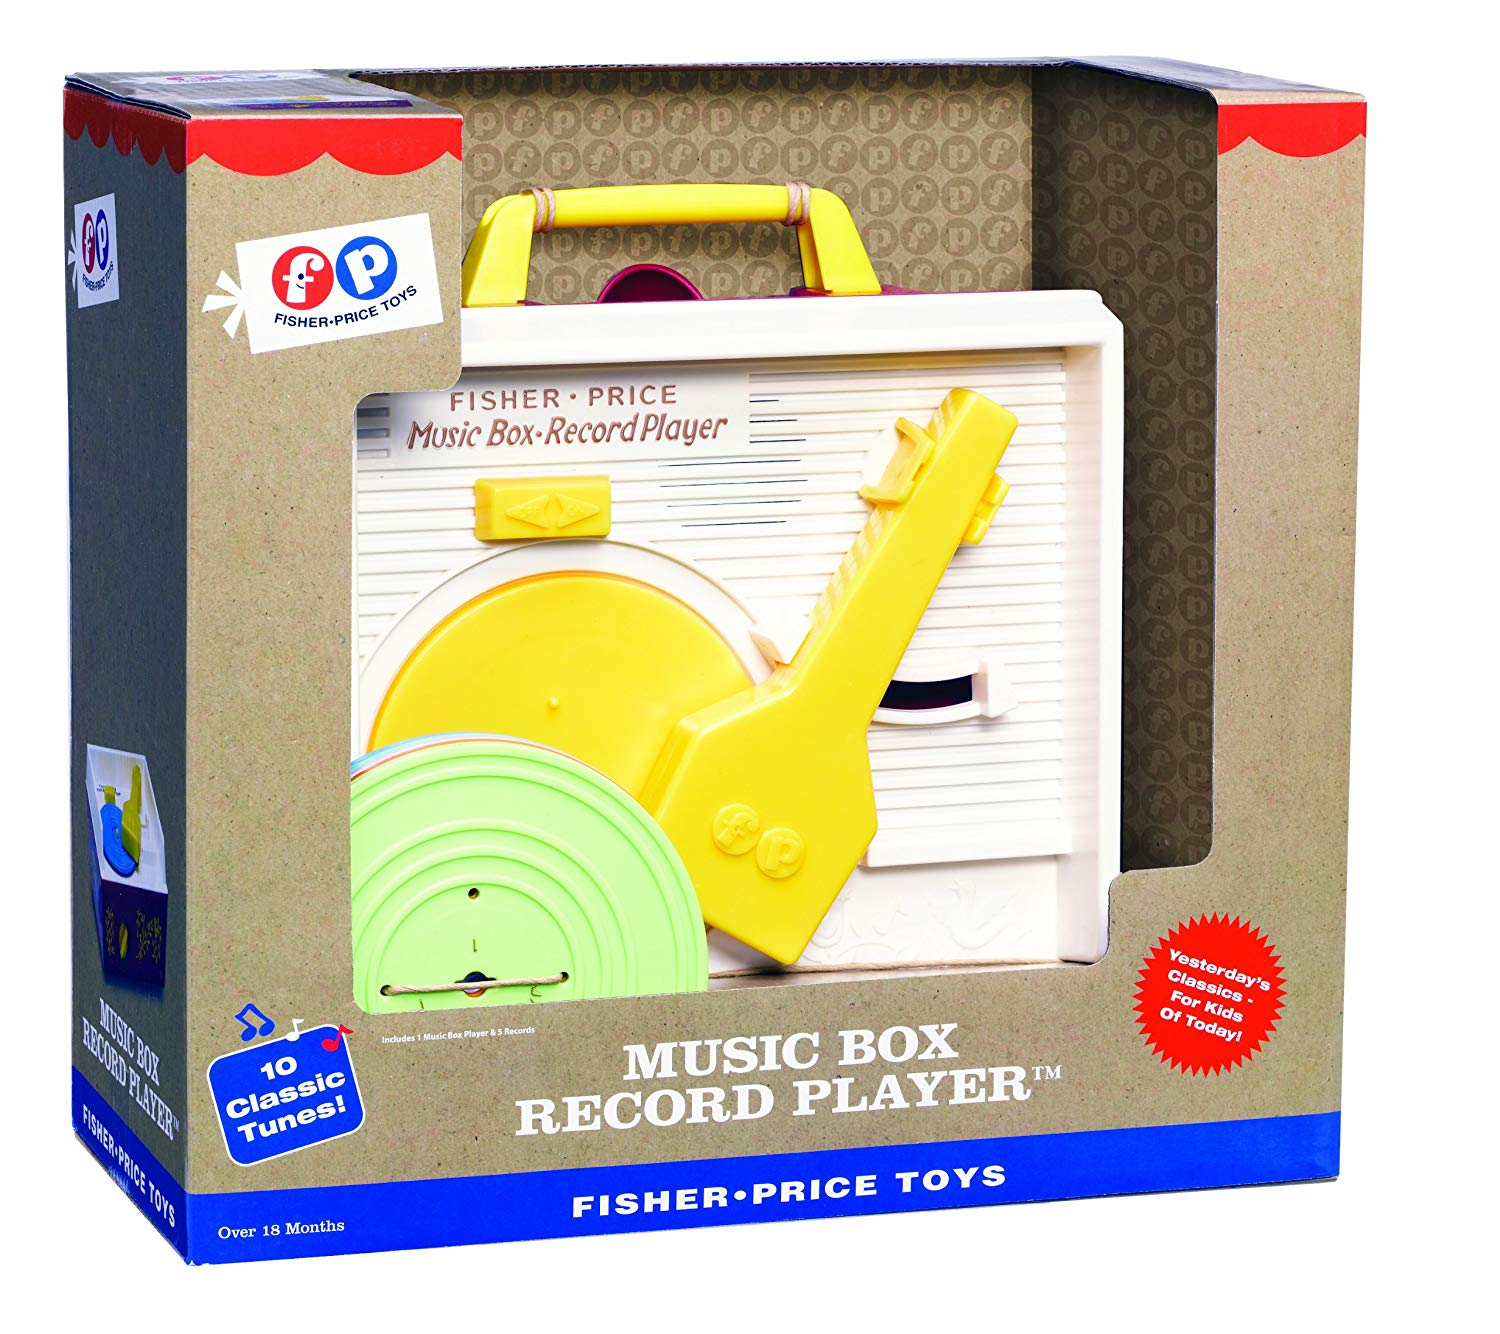 The Fisher Price Classics Retro Record Player is perfect for ages 18 months +.